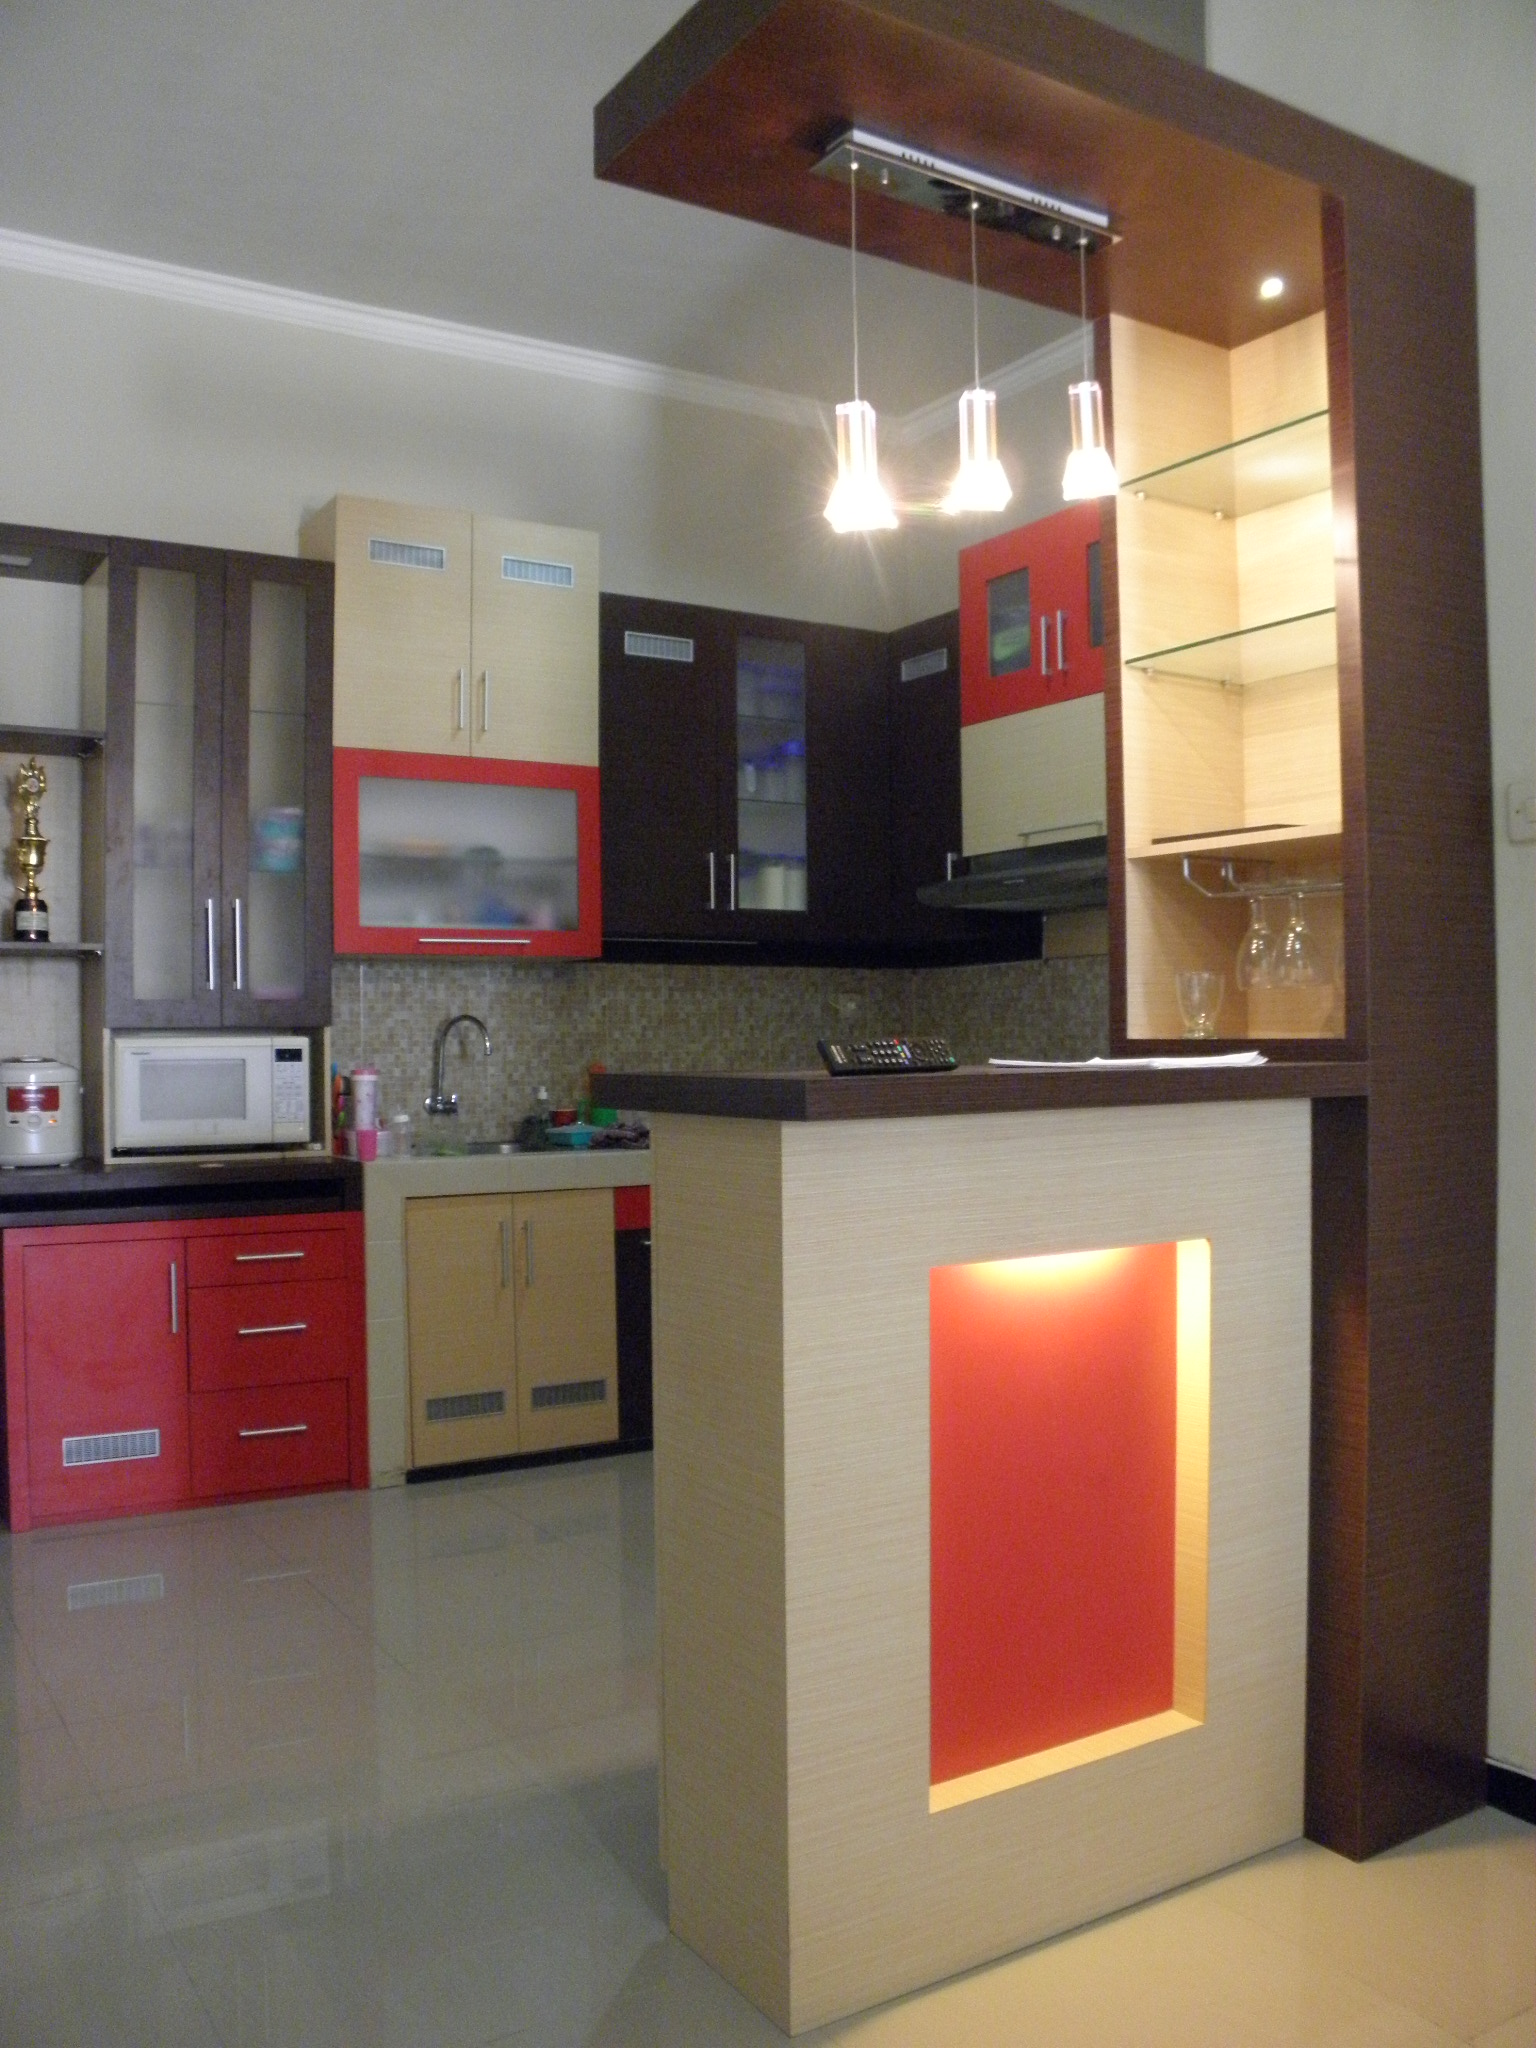 Kitchen set murah surabaya kitchen set minimalis surabaya kitchen